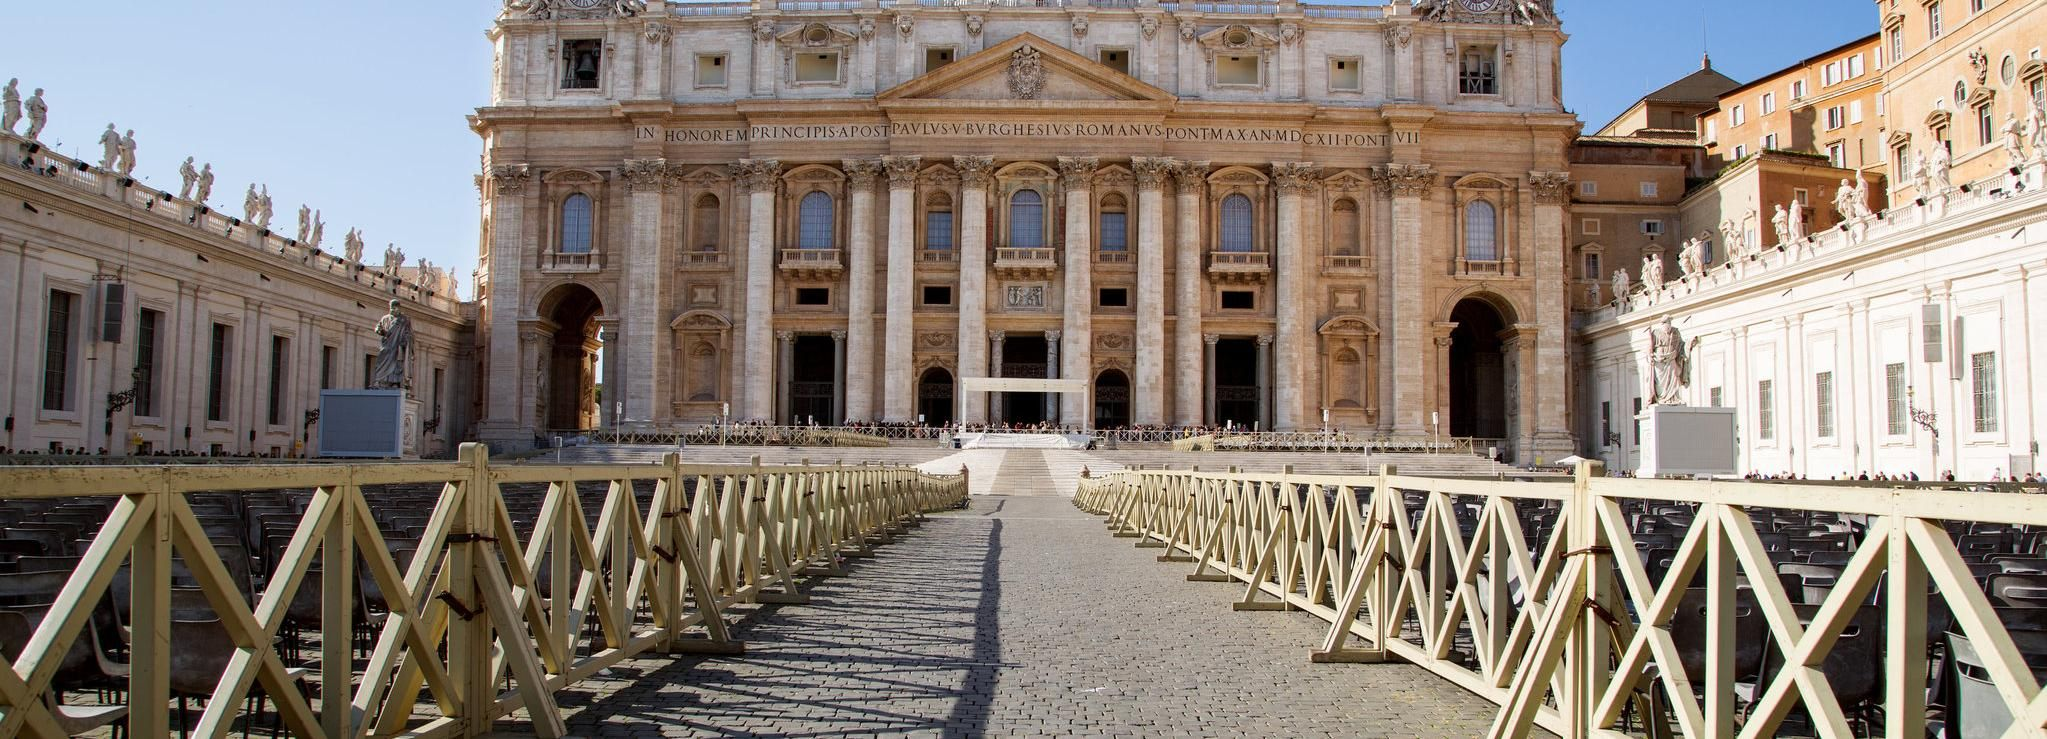 St. Peter's Basilica Guided Tour: Reserved Entrance